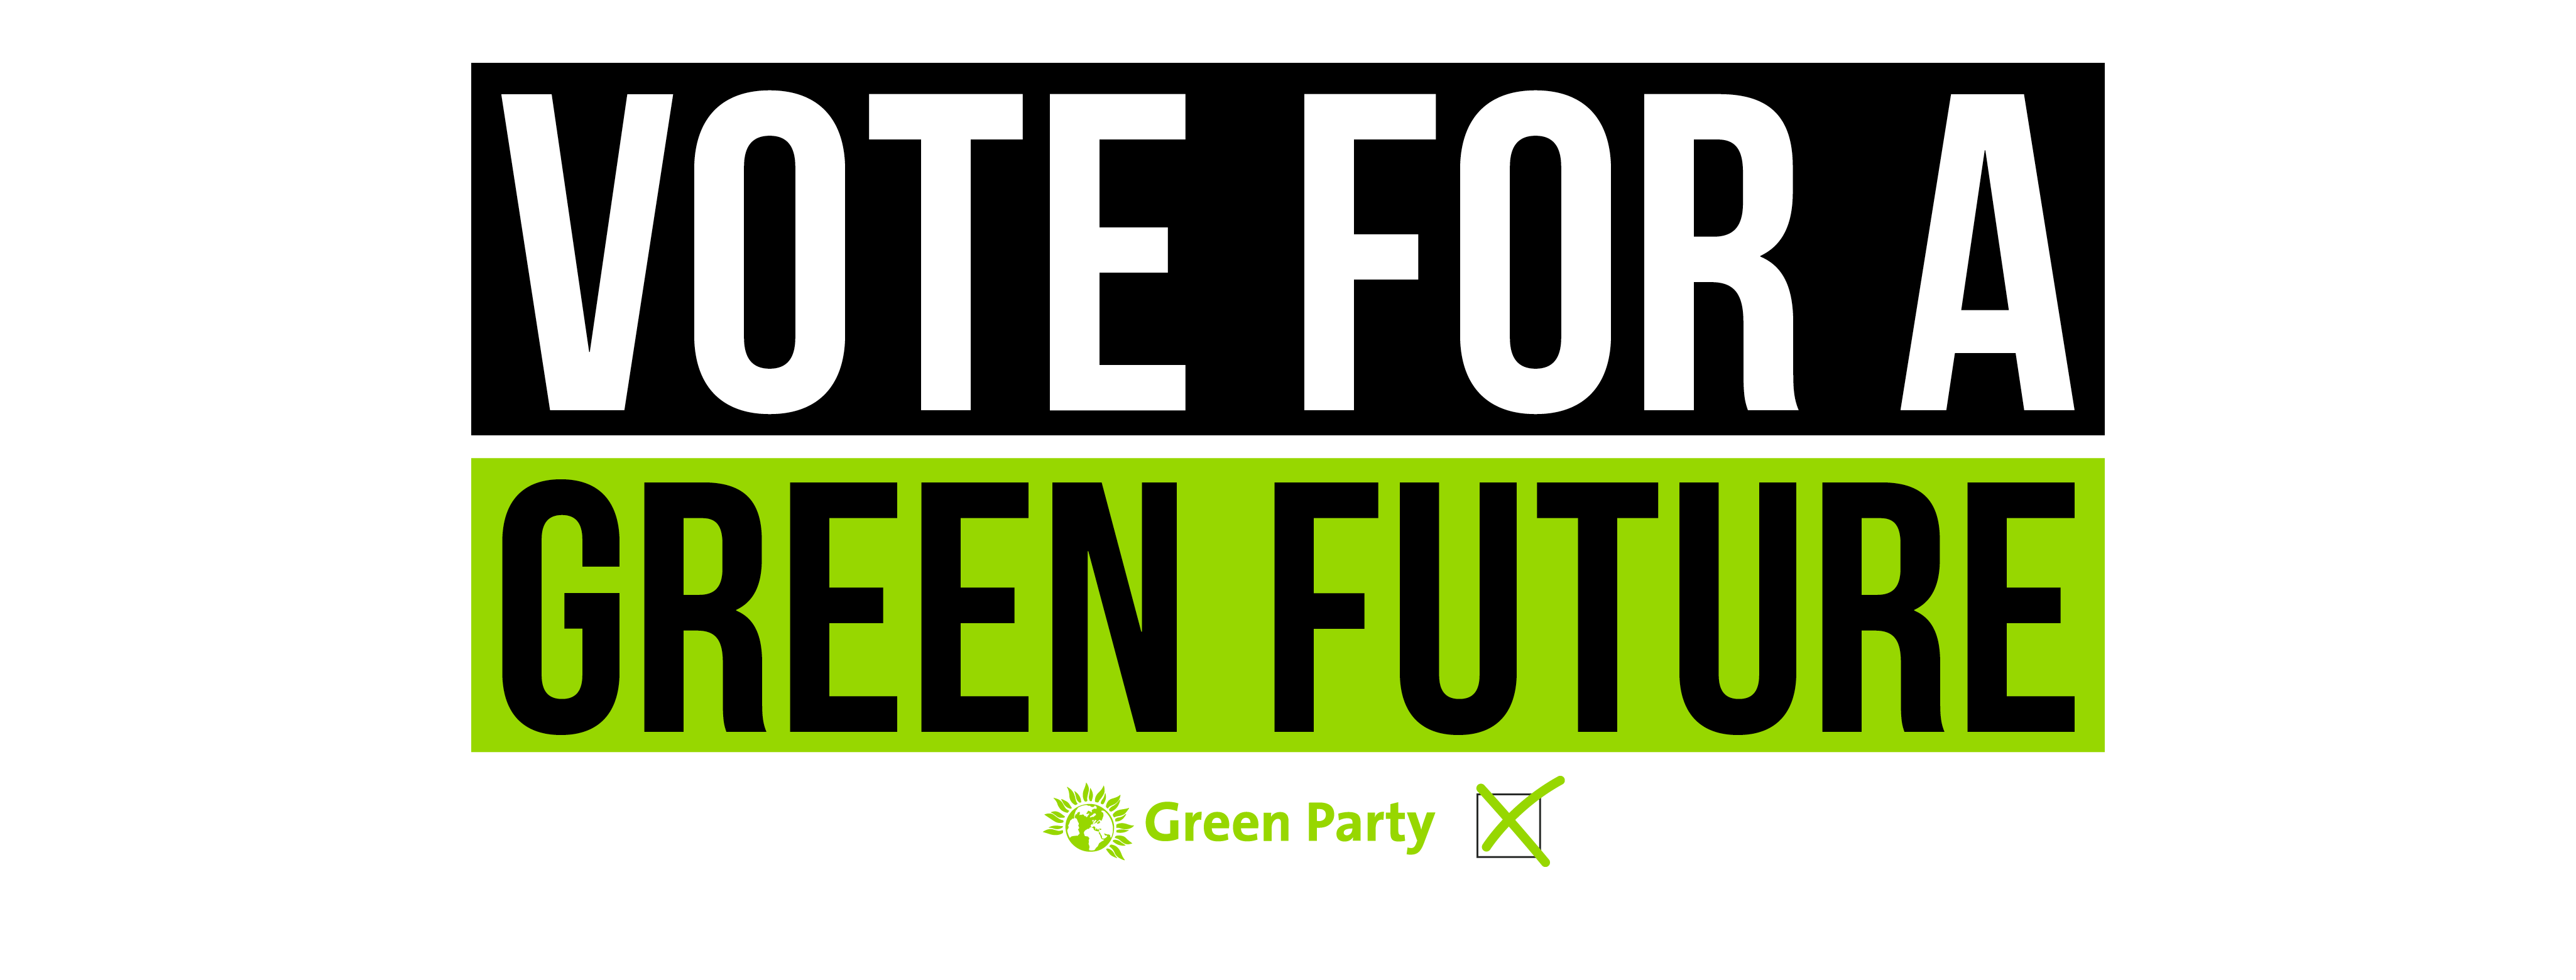 Vote for a Green Future in large black and green letters.